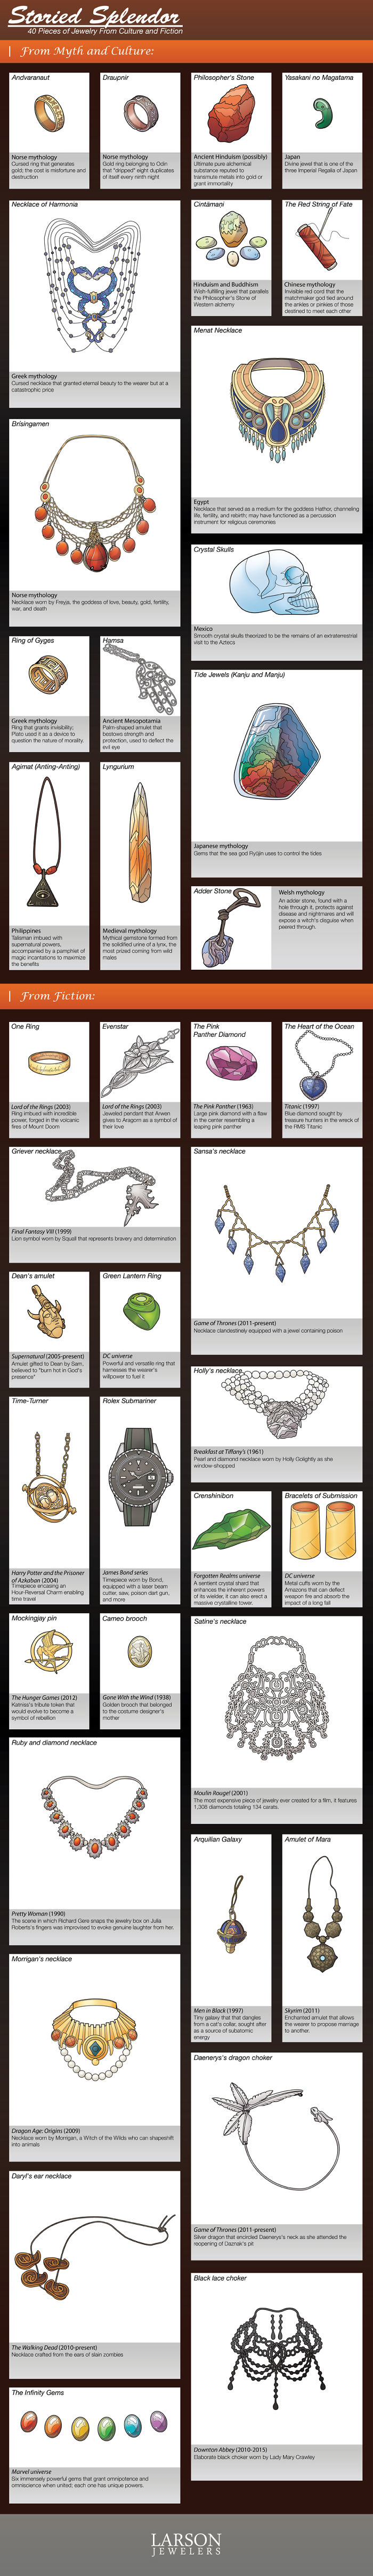 Found This Cool Collection Of Fictional Jewelry